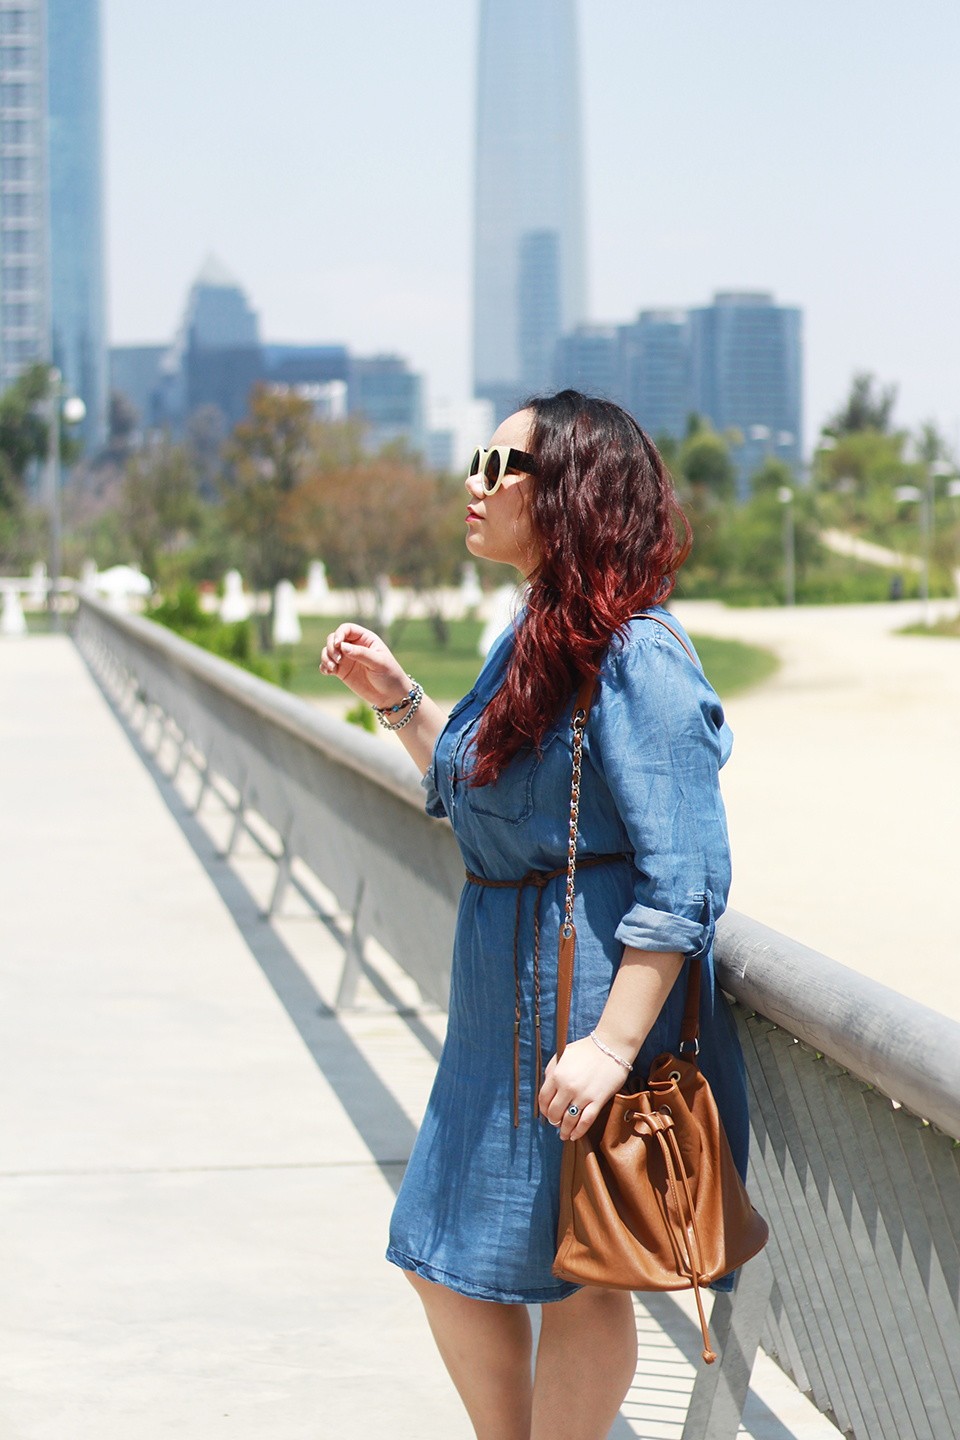 denim-dress-plus-size-bucket-bag-cut-out-boots-cyan-paris-santiago-vitacura-blogger-mexicana